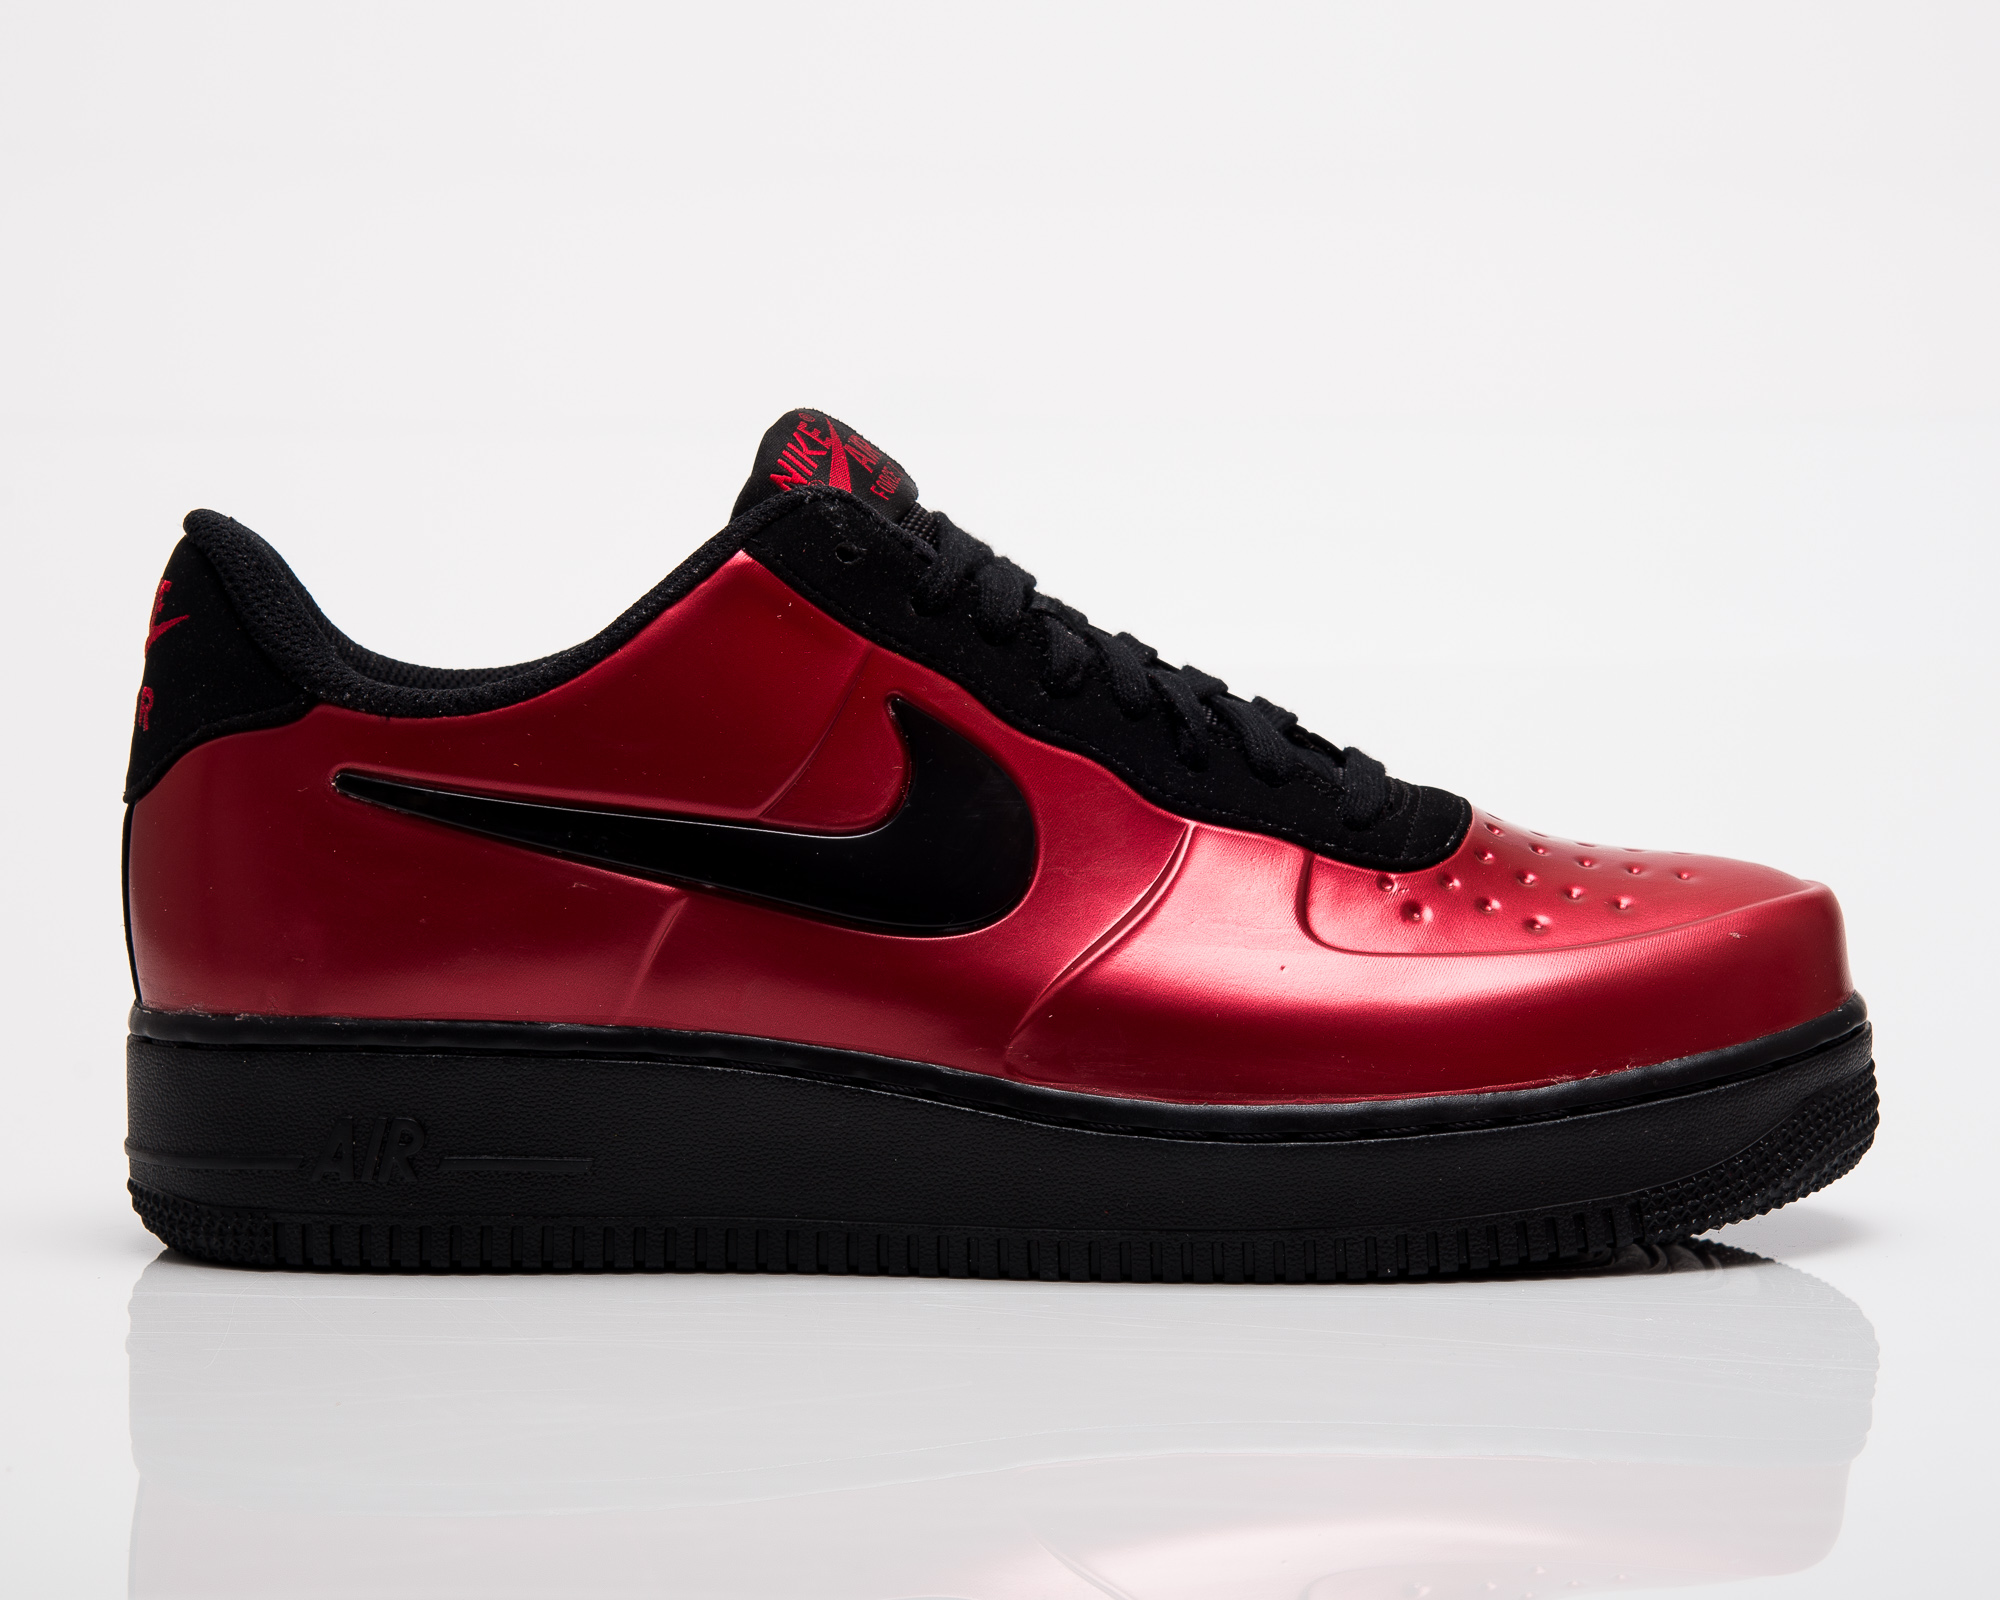 size 40 9625a 84475 Nike Air Force 1 Foamposite Pro Cup - Shoes Casual ...